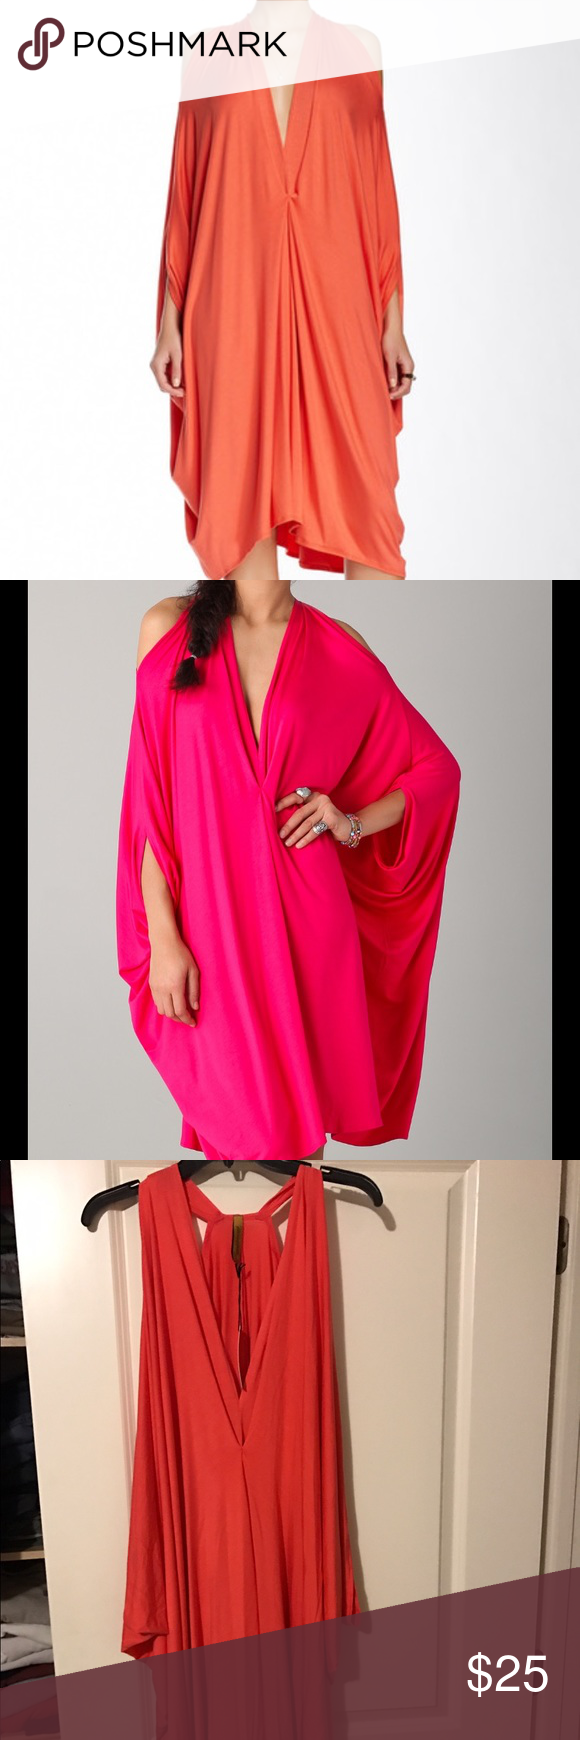 BNWT- Rachel pally kaftan dress BNWT- Rachel Pally Gywneth caftan dress. It's not fitted actually drapes and it suppose to be over sized look. You could belt it to make you have more shape. Pretty orange color like the first photo shows. Rachel Pally Dresses